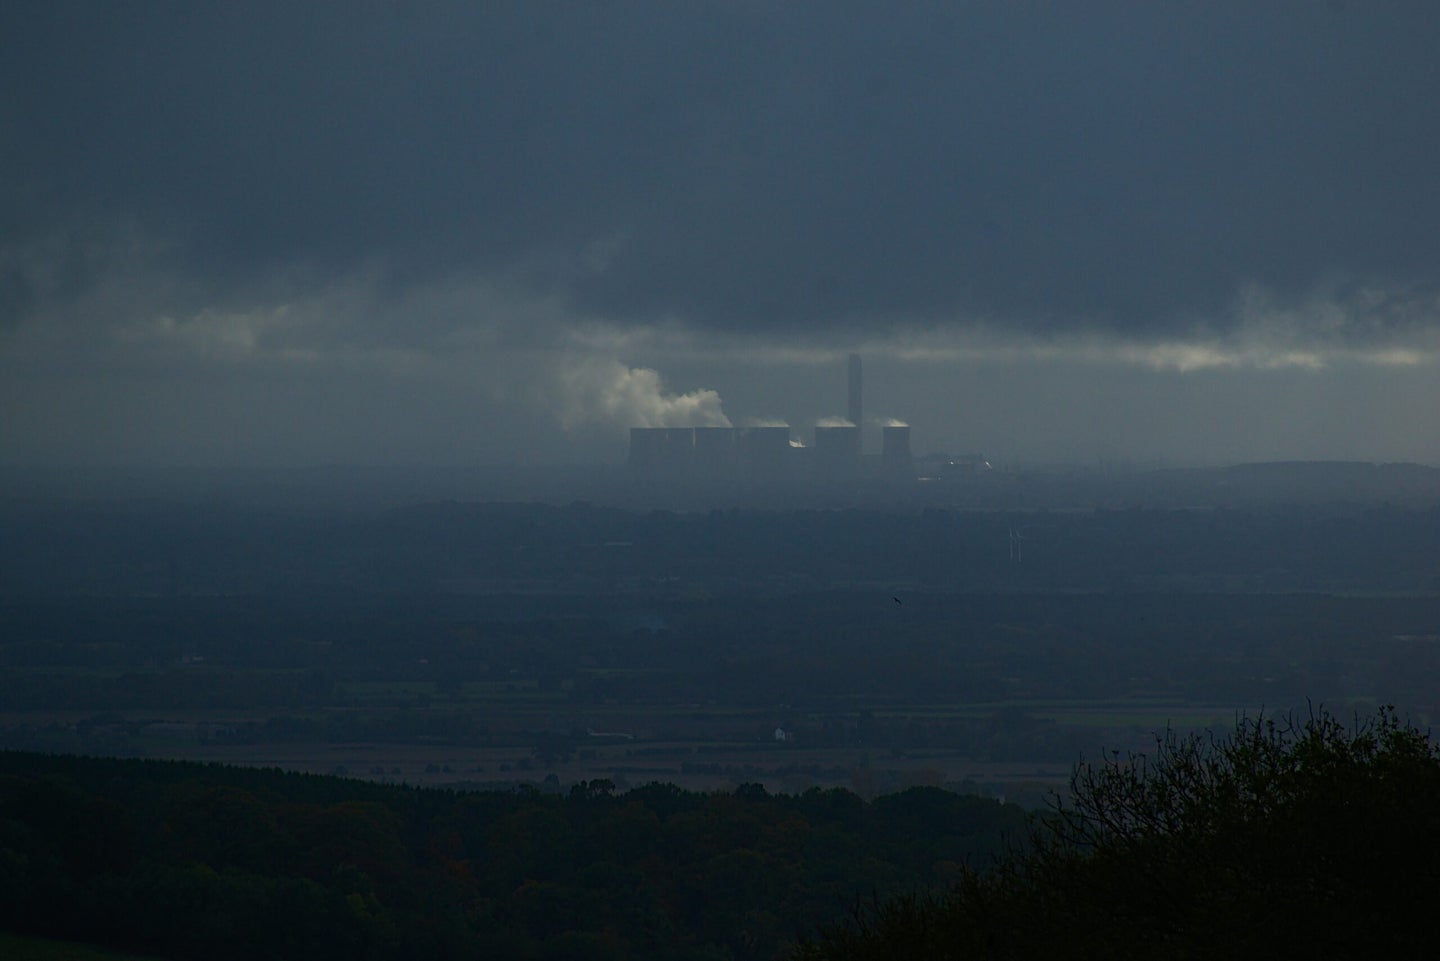 landscape filled with smog with industrial building in the distance